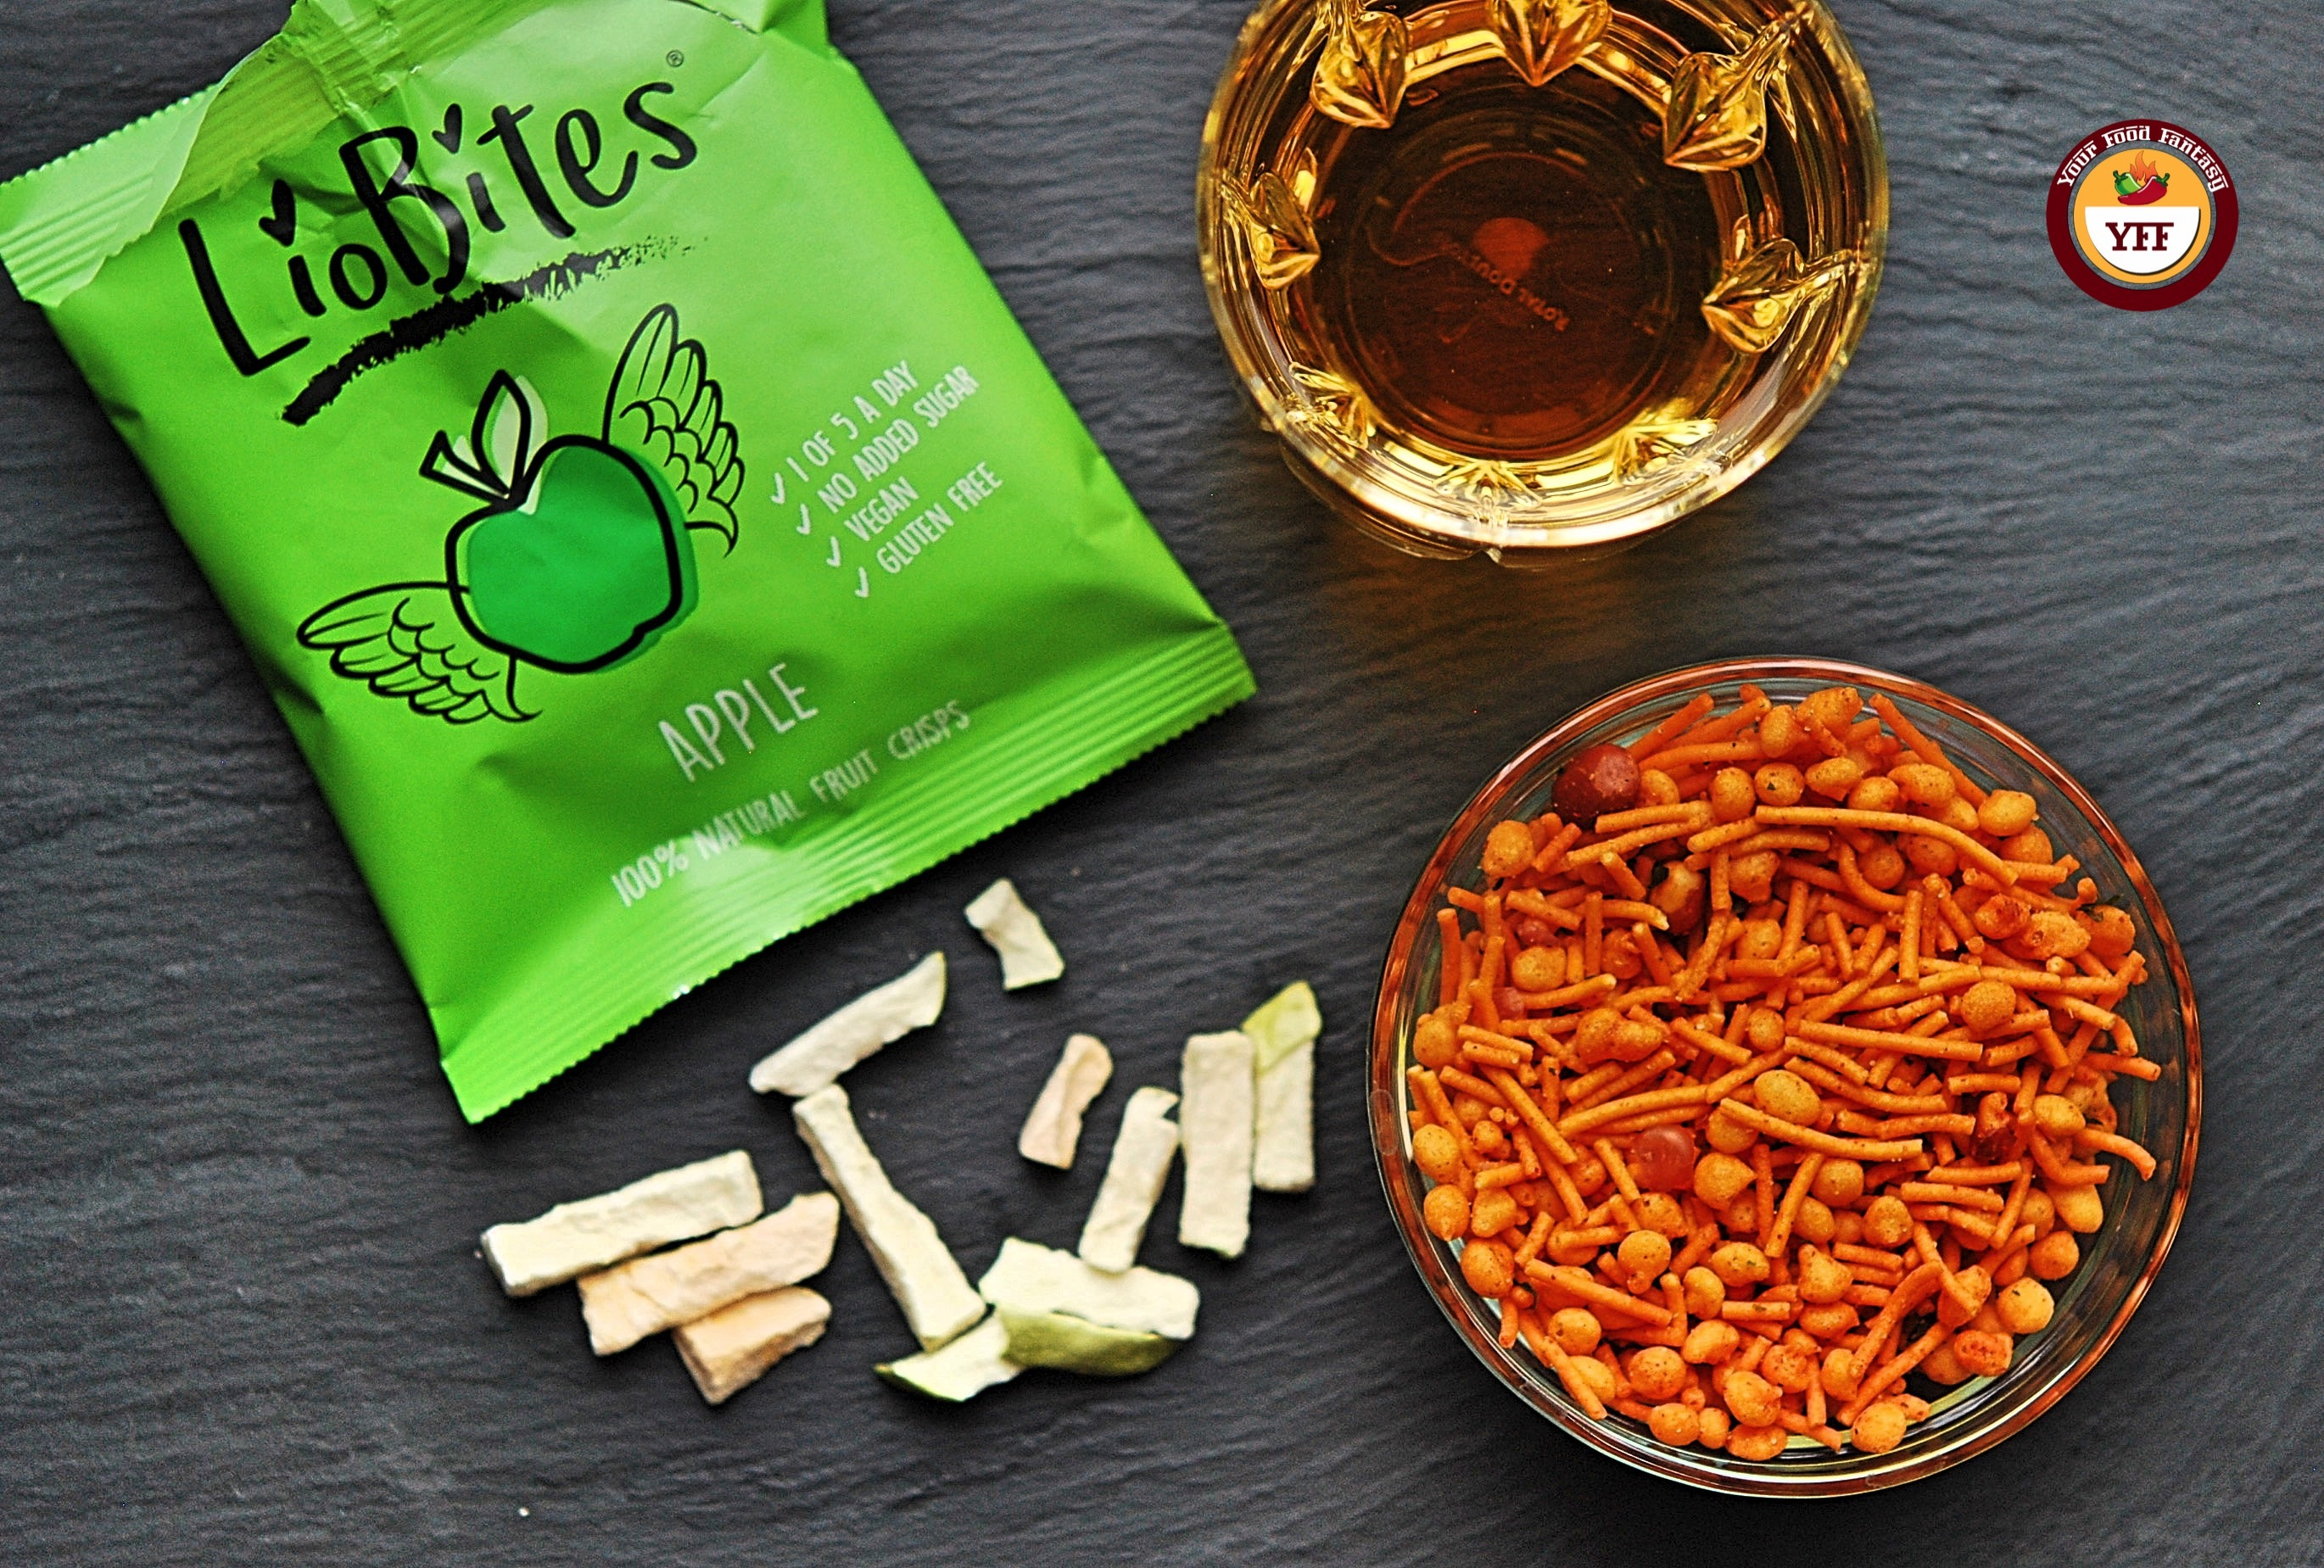 LioBites review by yourfoodfantasy.com